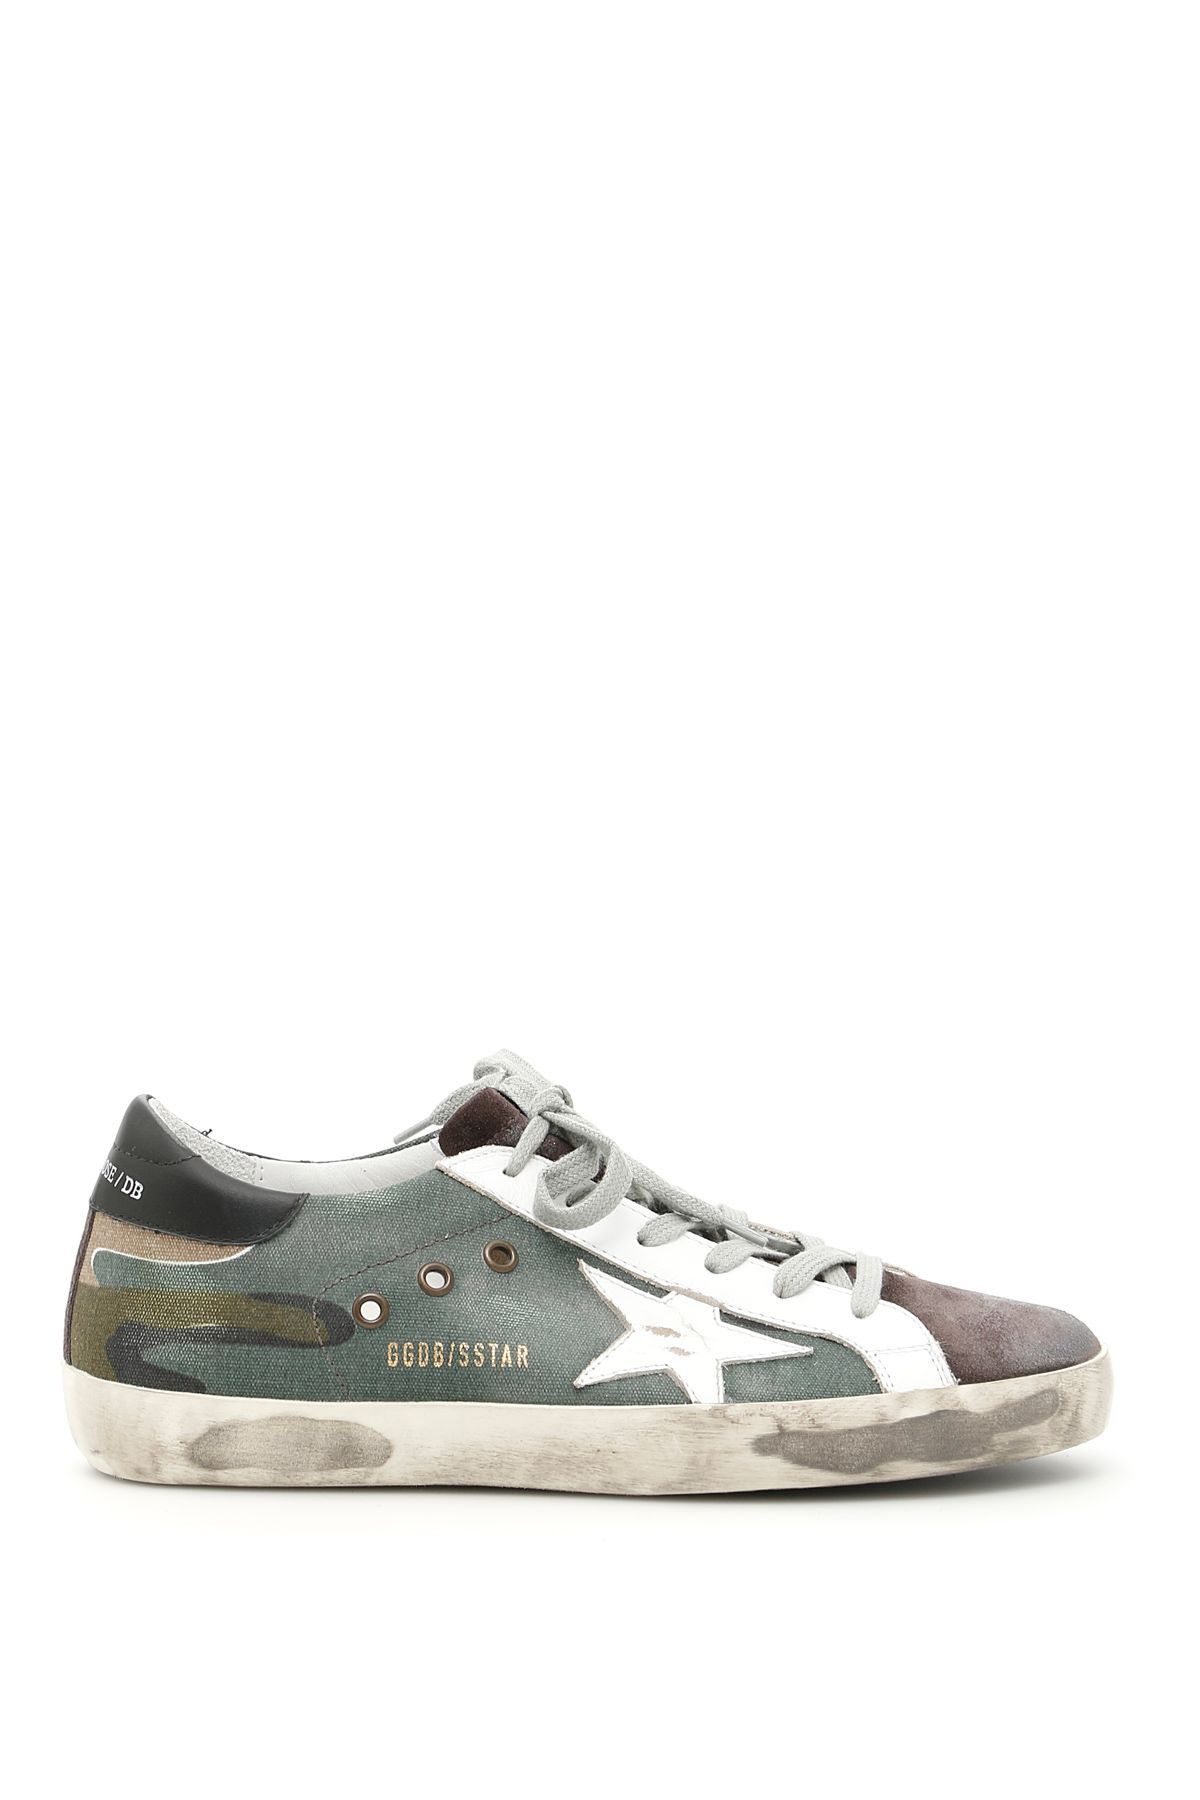 #goldengoose #shoes #